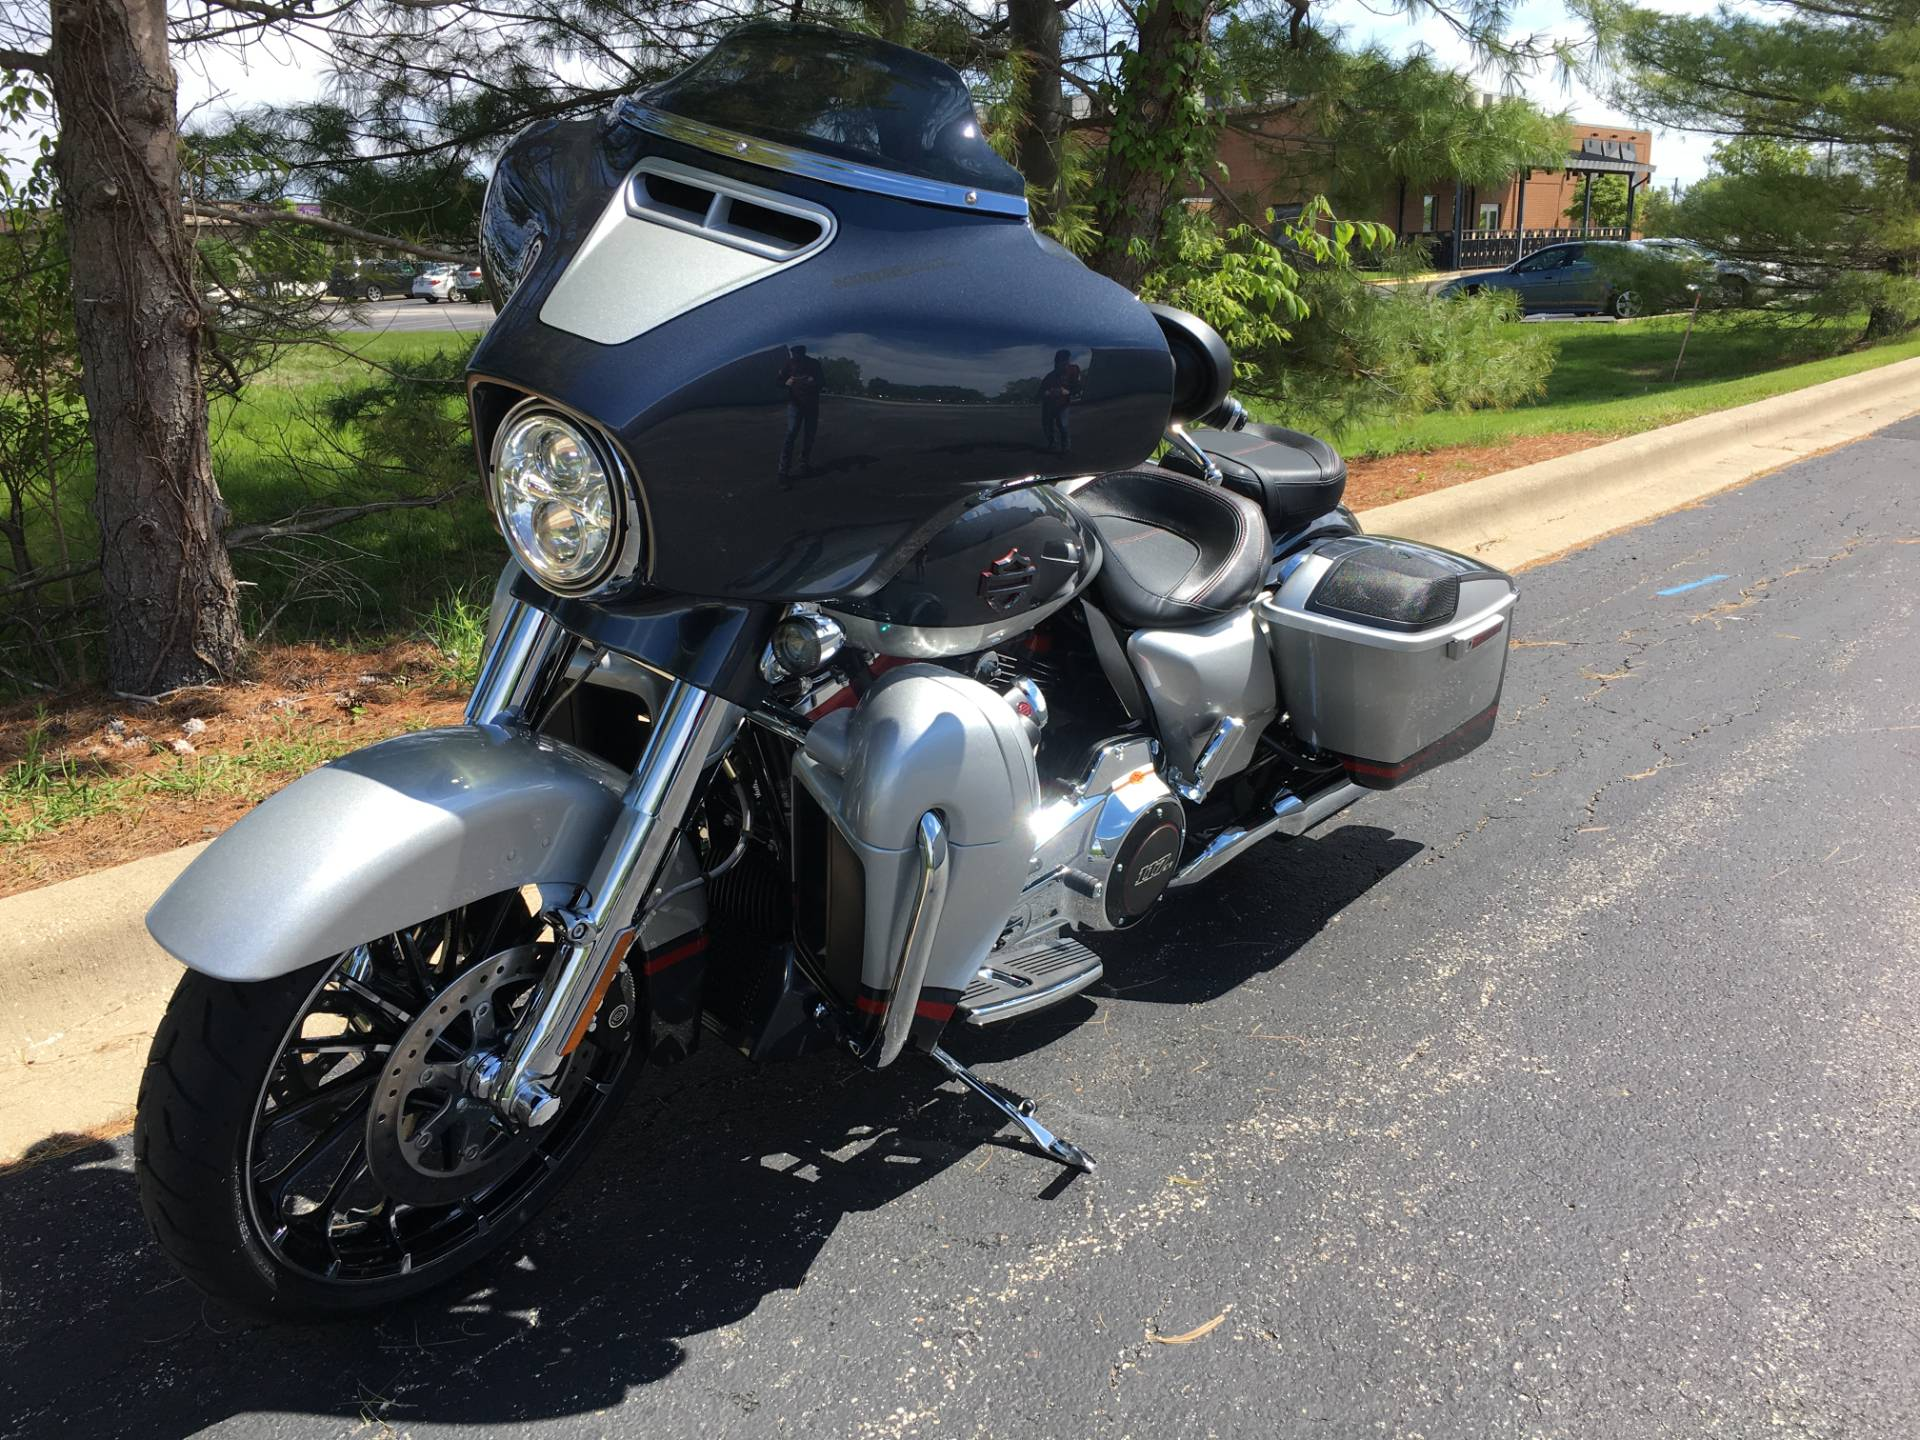 2019 Harley-Davidson CVO Street Glide in Forsyth, Illinois - Photo 5